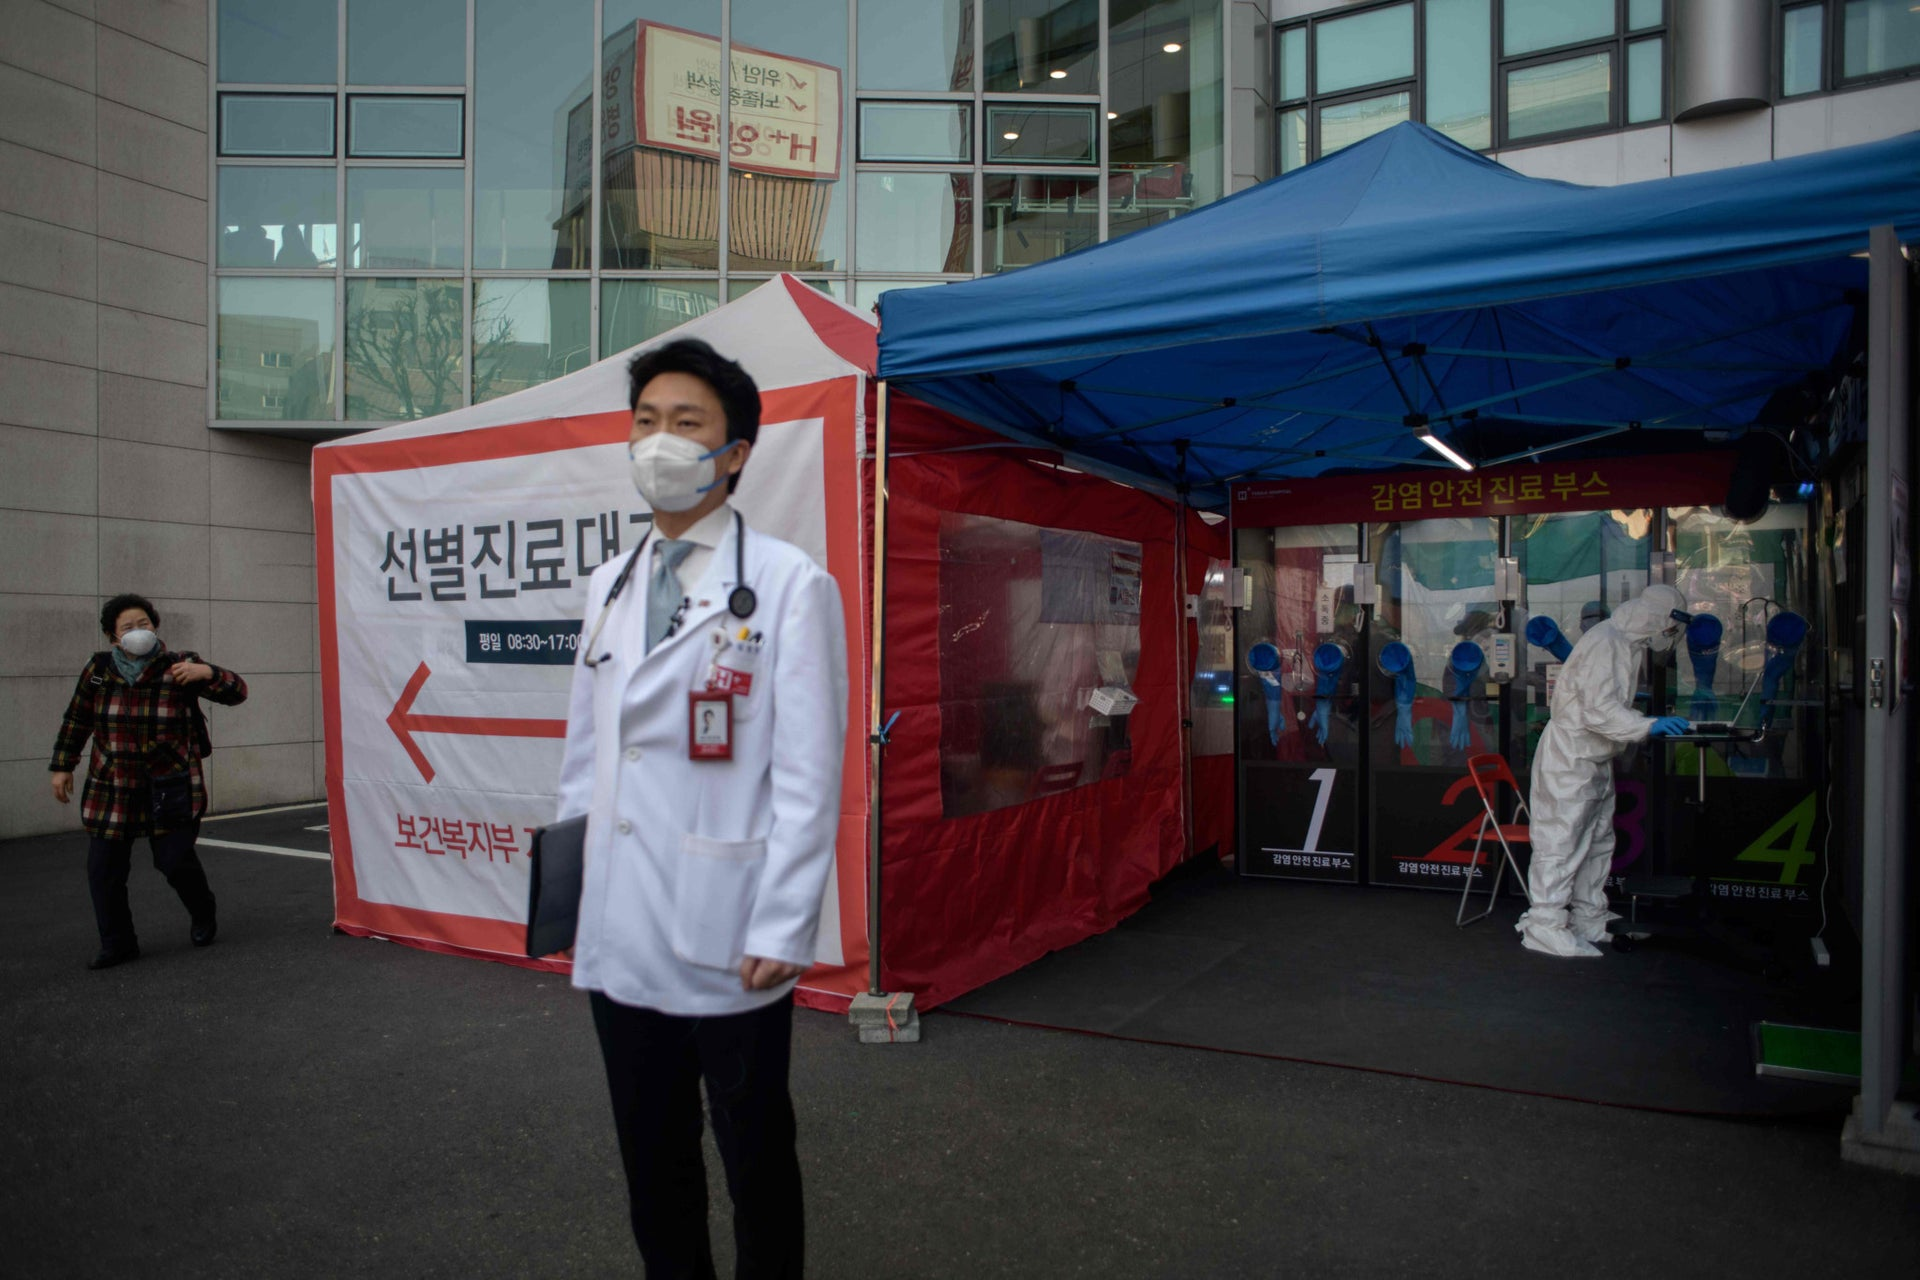 Hospital president Kim Sang-il (C) stands outside a COVID-19 novel coronavirus testing booth at Yangji hospital in Seoul on March 17, 2020.